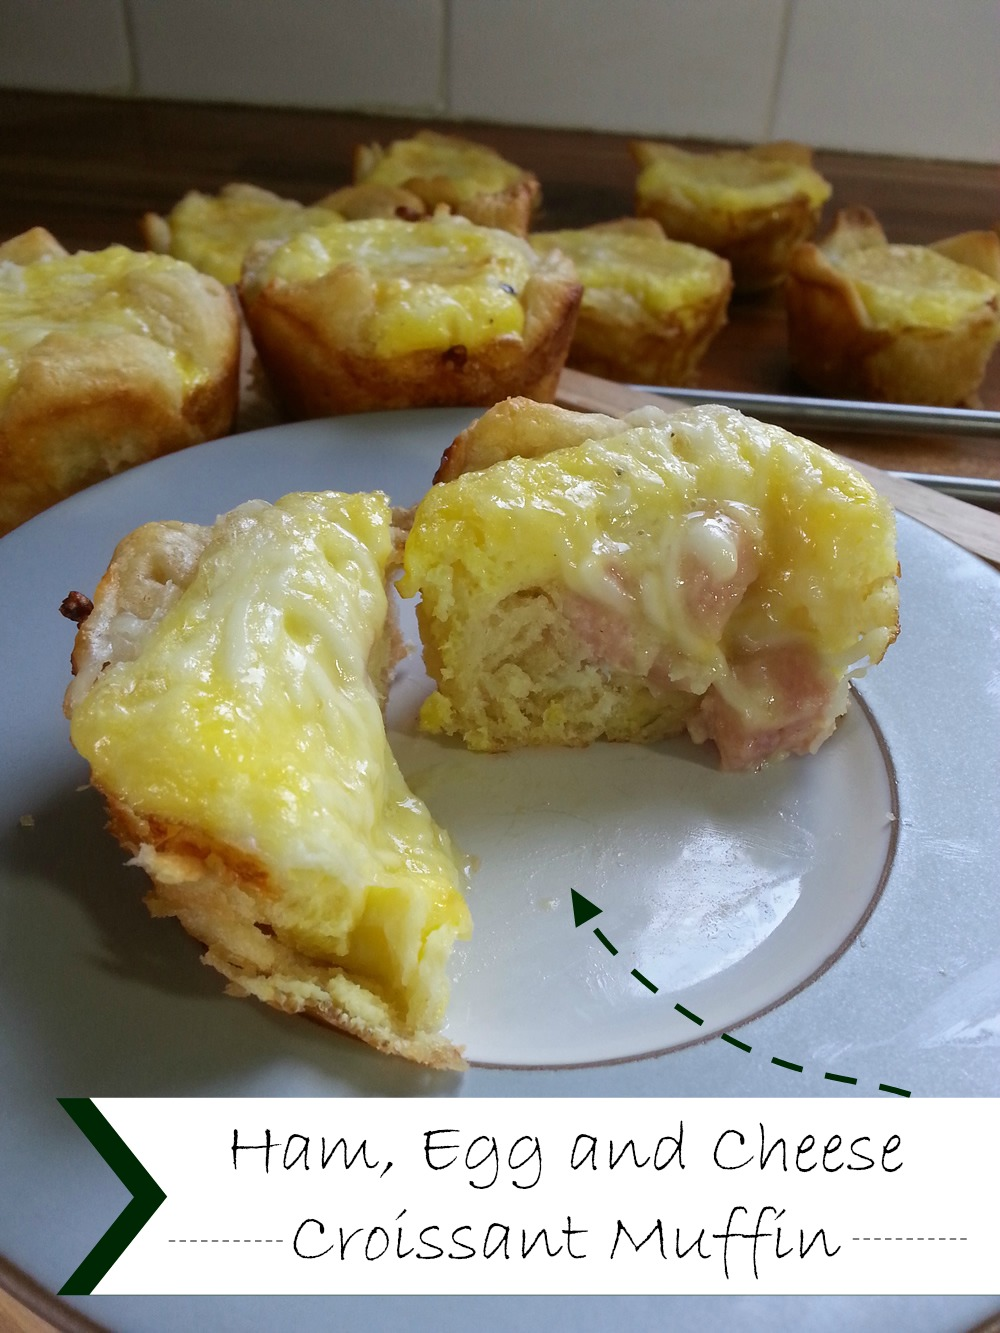 Ham, egg and cheese croissant muffin #GoAllNatural #WeaveMade #ad @smithfieldfoods